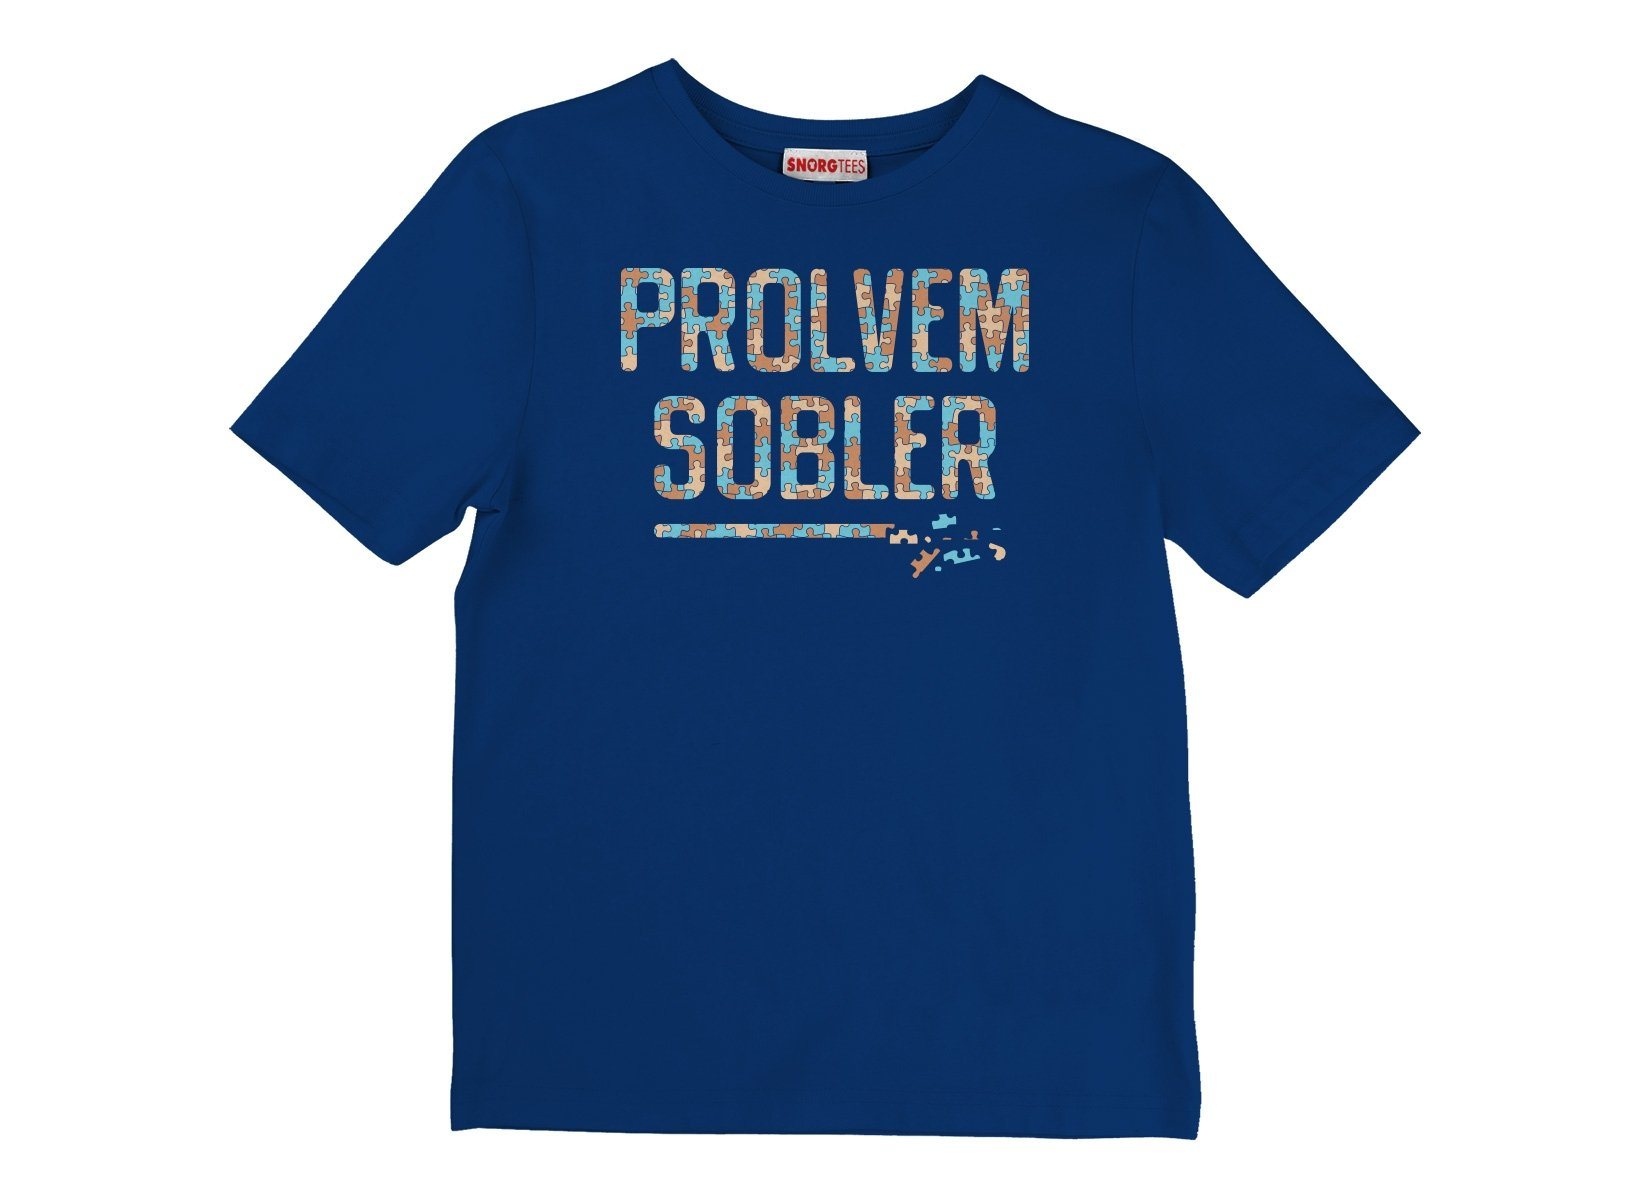 Prolvem Sobler on Kids T-Shirt